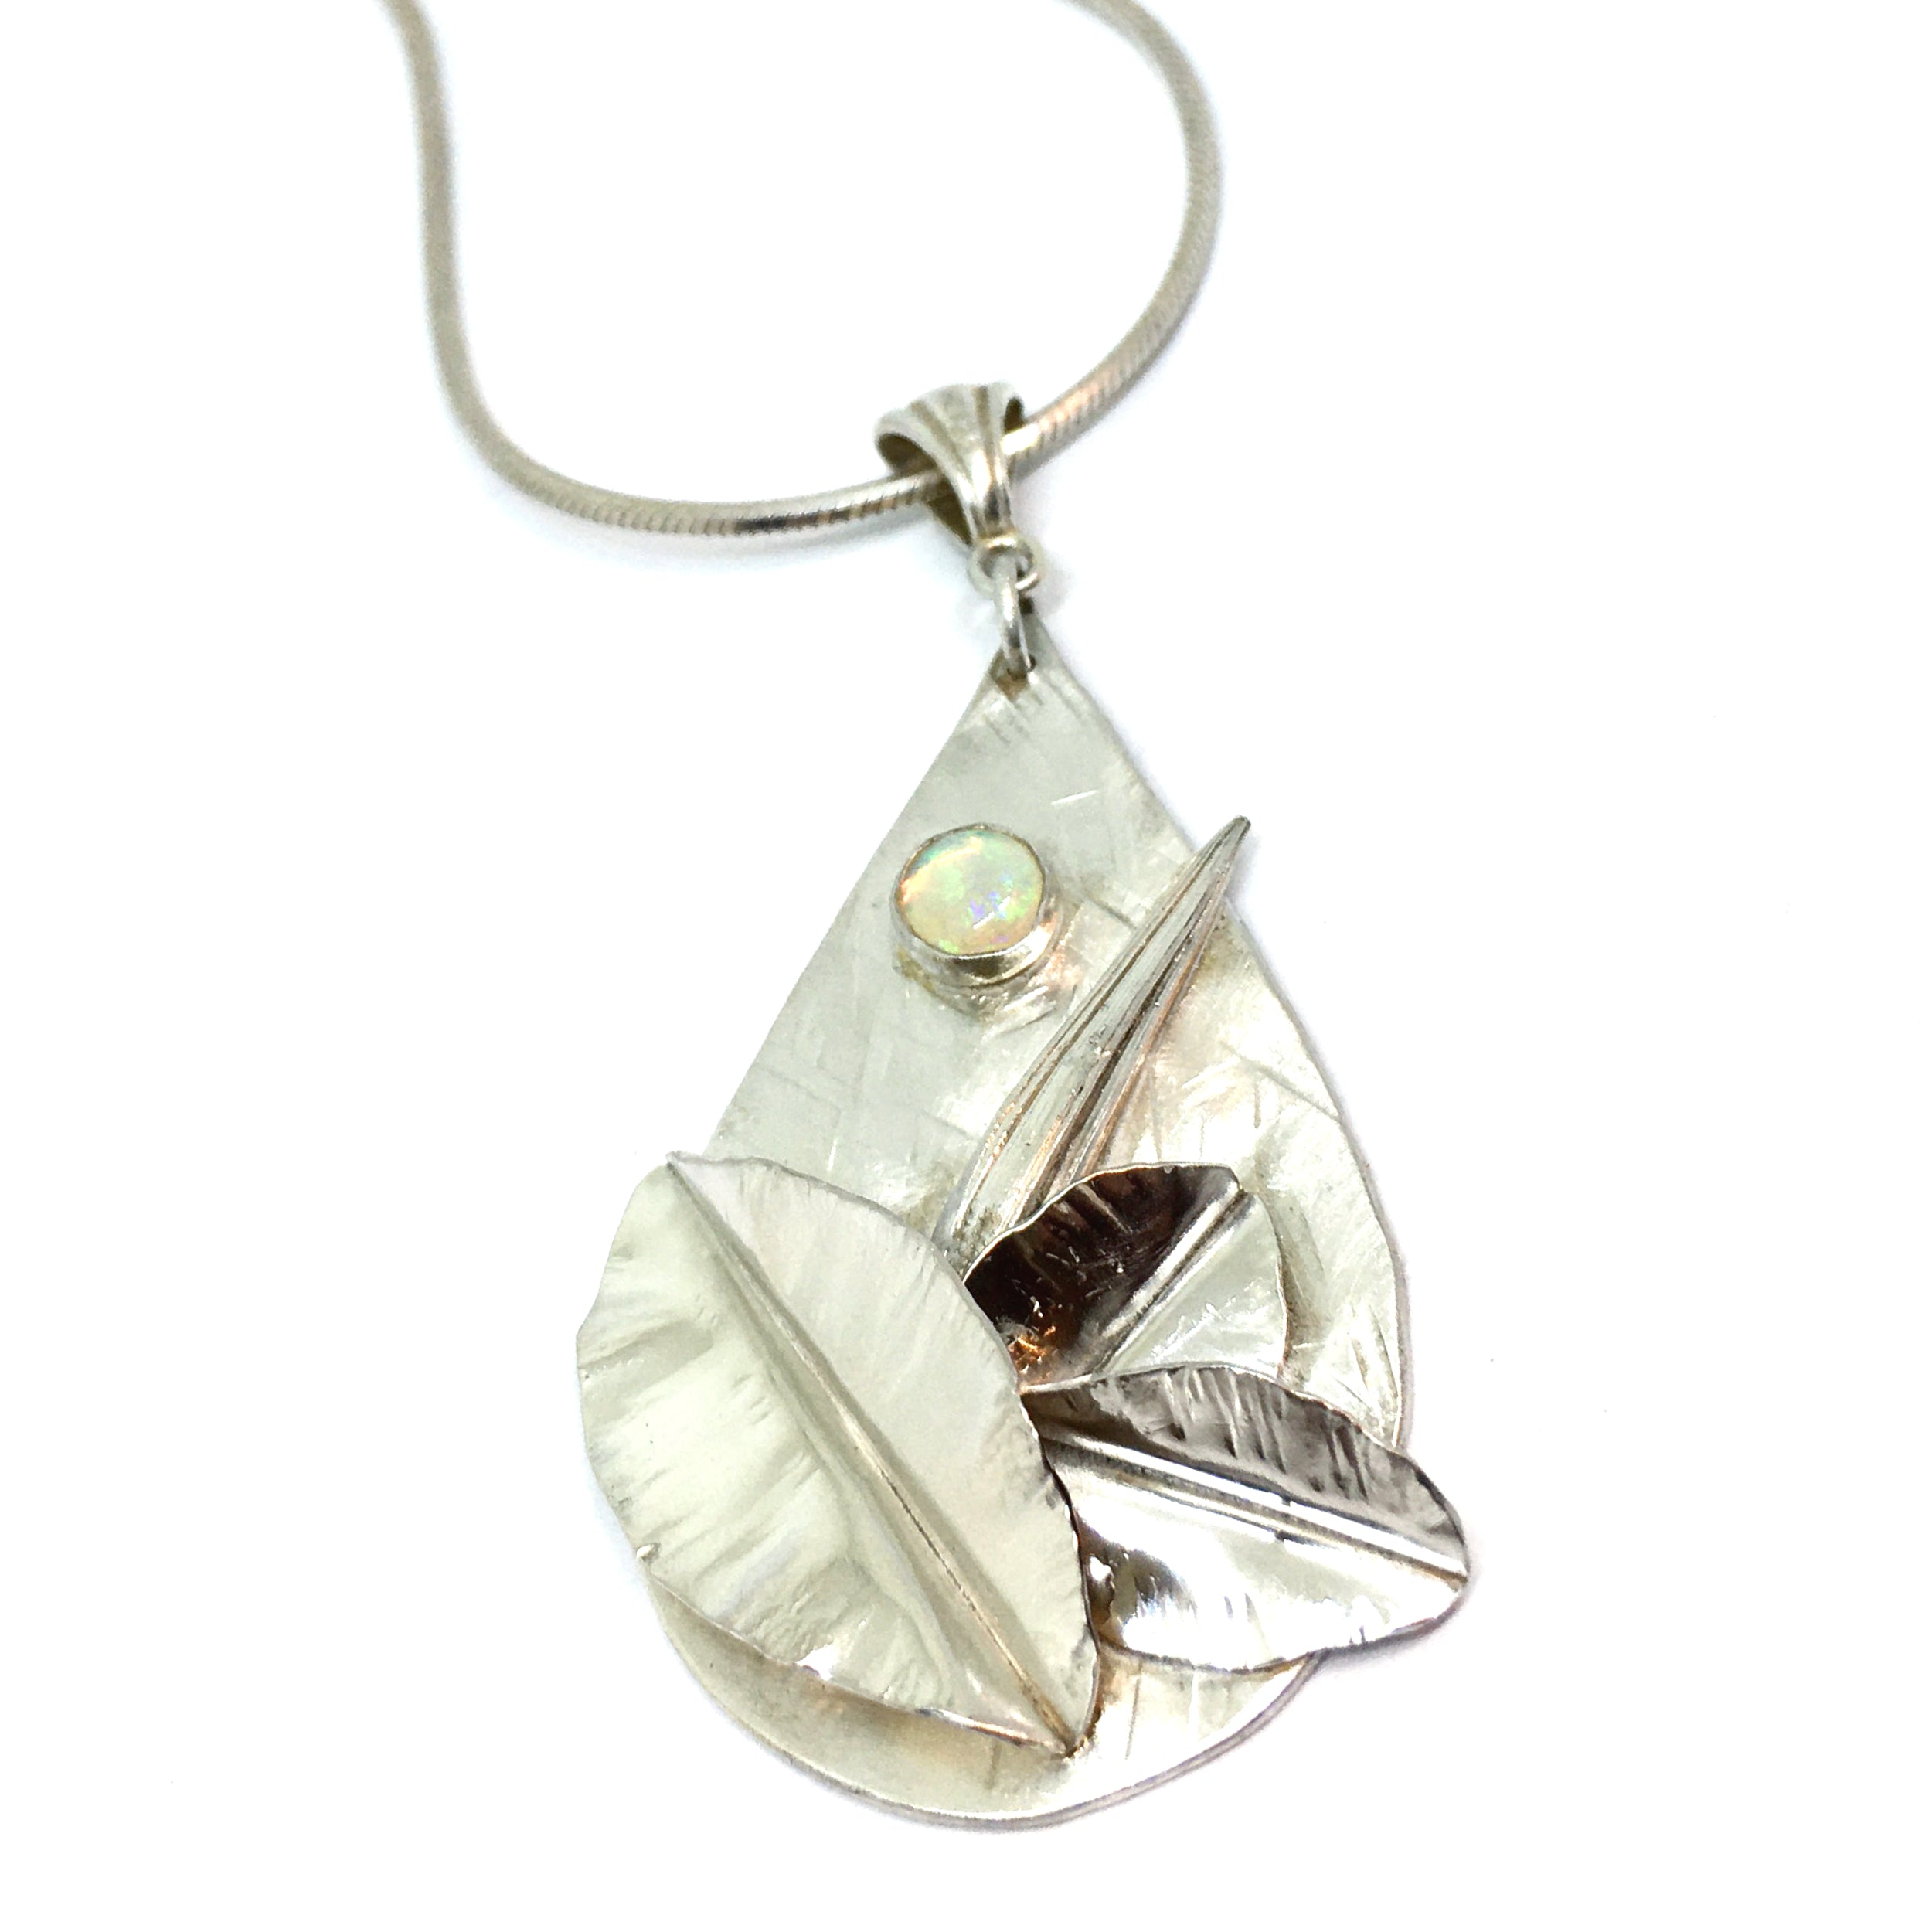 Botanical Opal Pendant with fold formed leaves and mitsuro hikime in sterling silver on snake chain